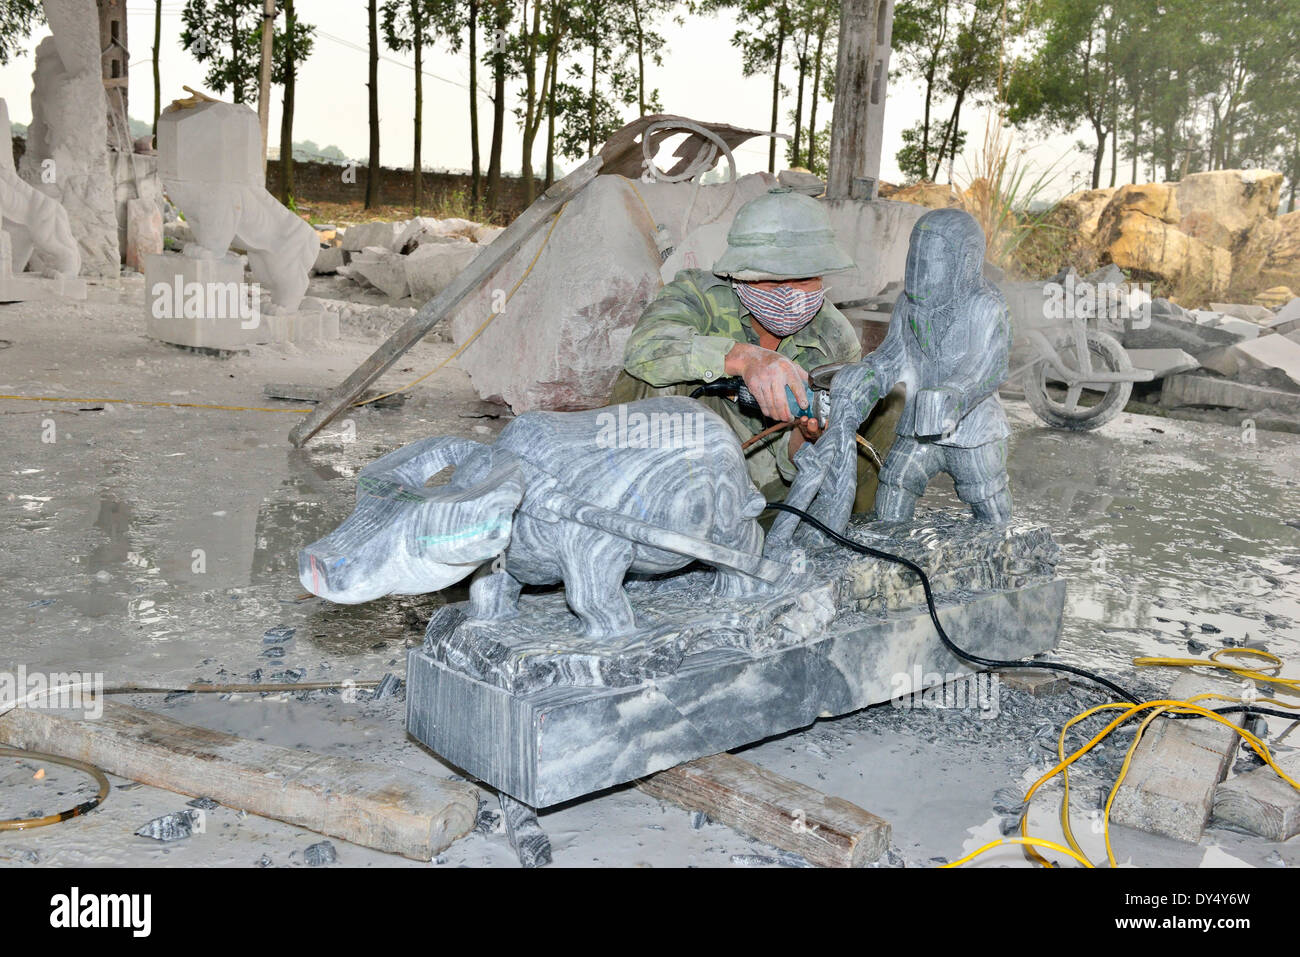 Stone cutter cutting rock with grinder and carving into large ornaments for tourists to buy at the Hong Ngoc Handicraft center. - Stock Image